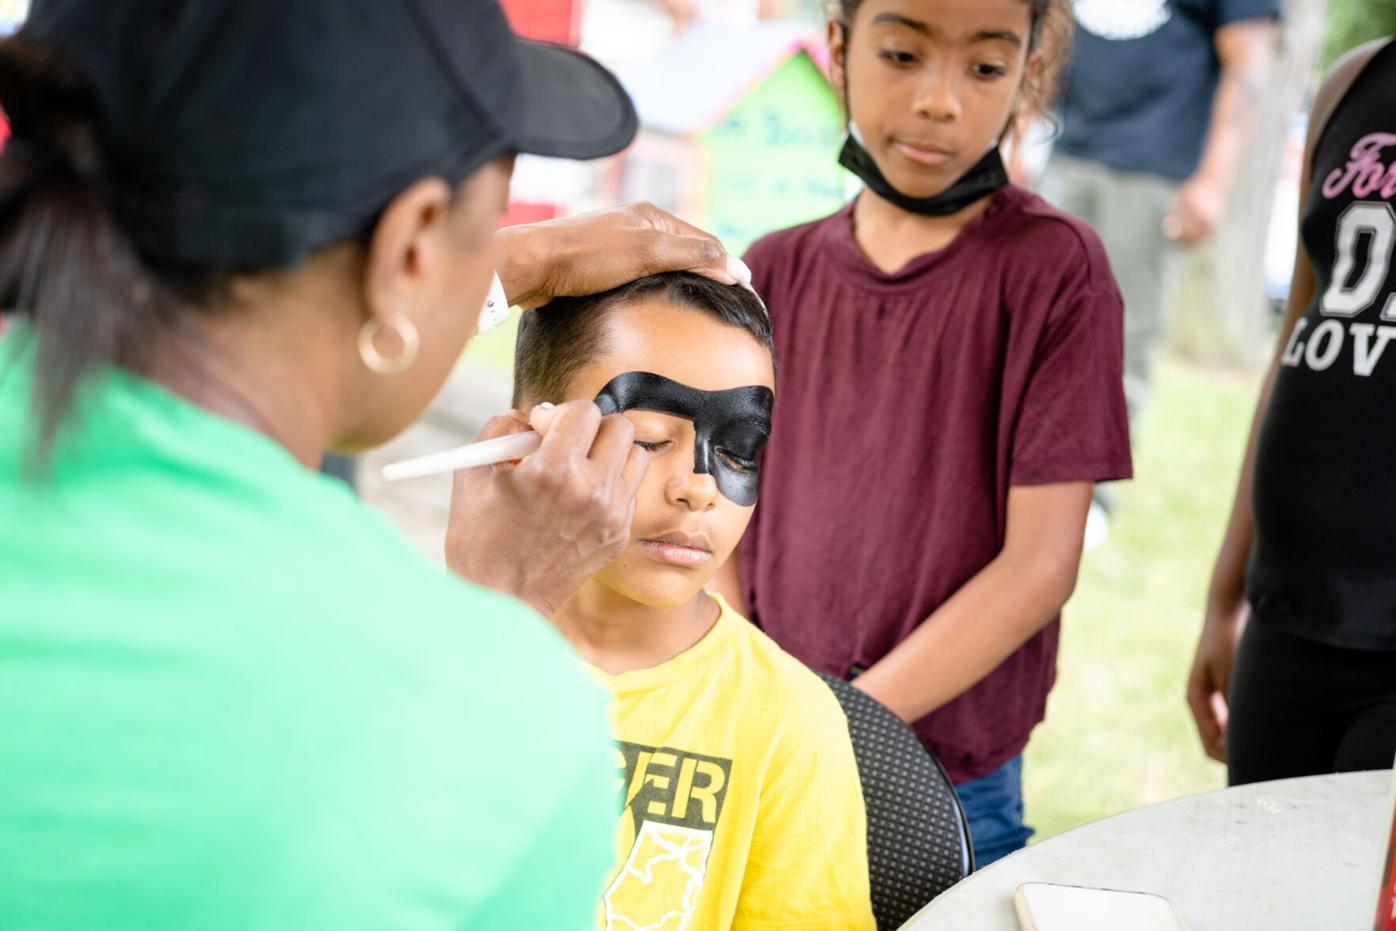 A child getting his face painted